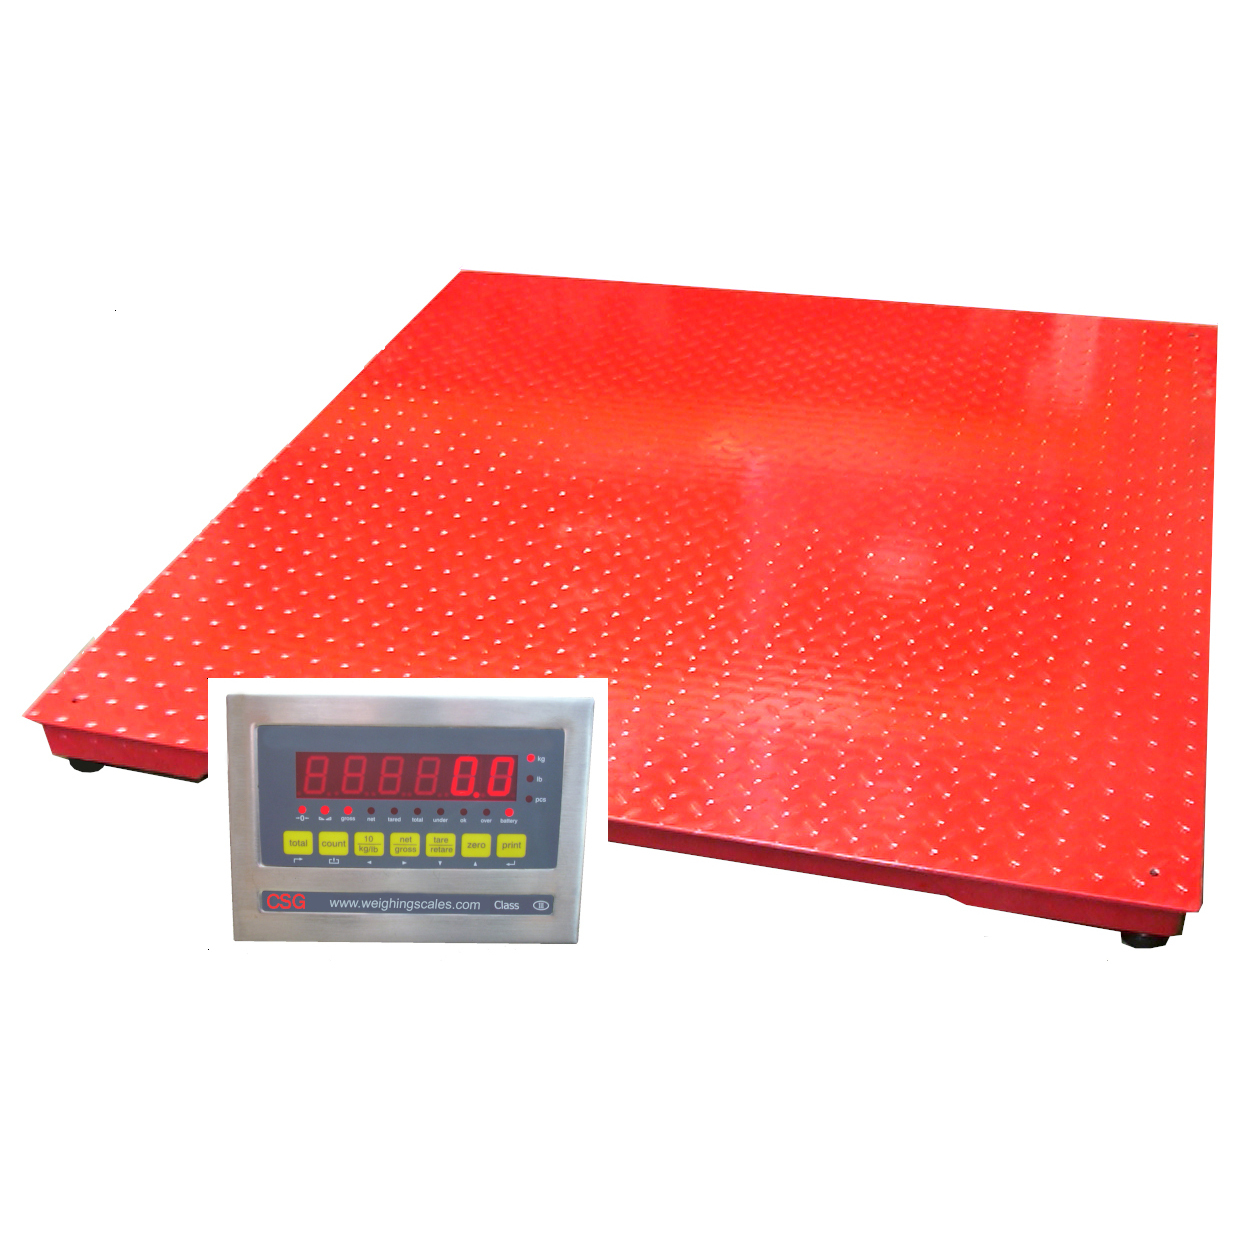 Platform Scales from countyscales.co.uk